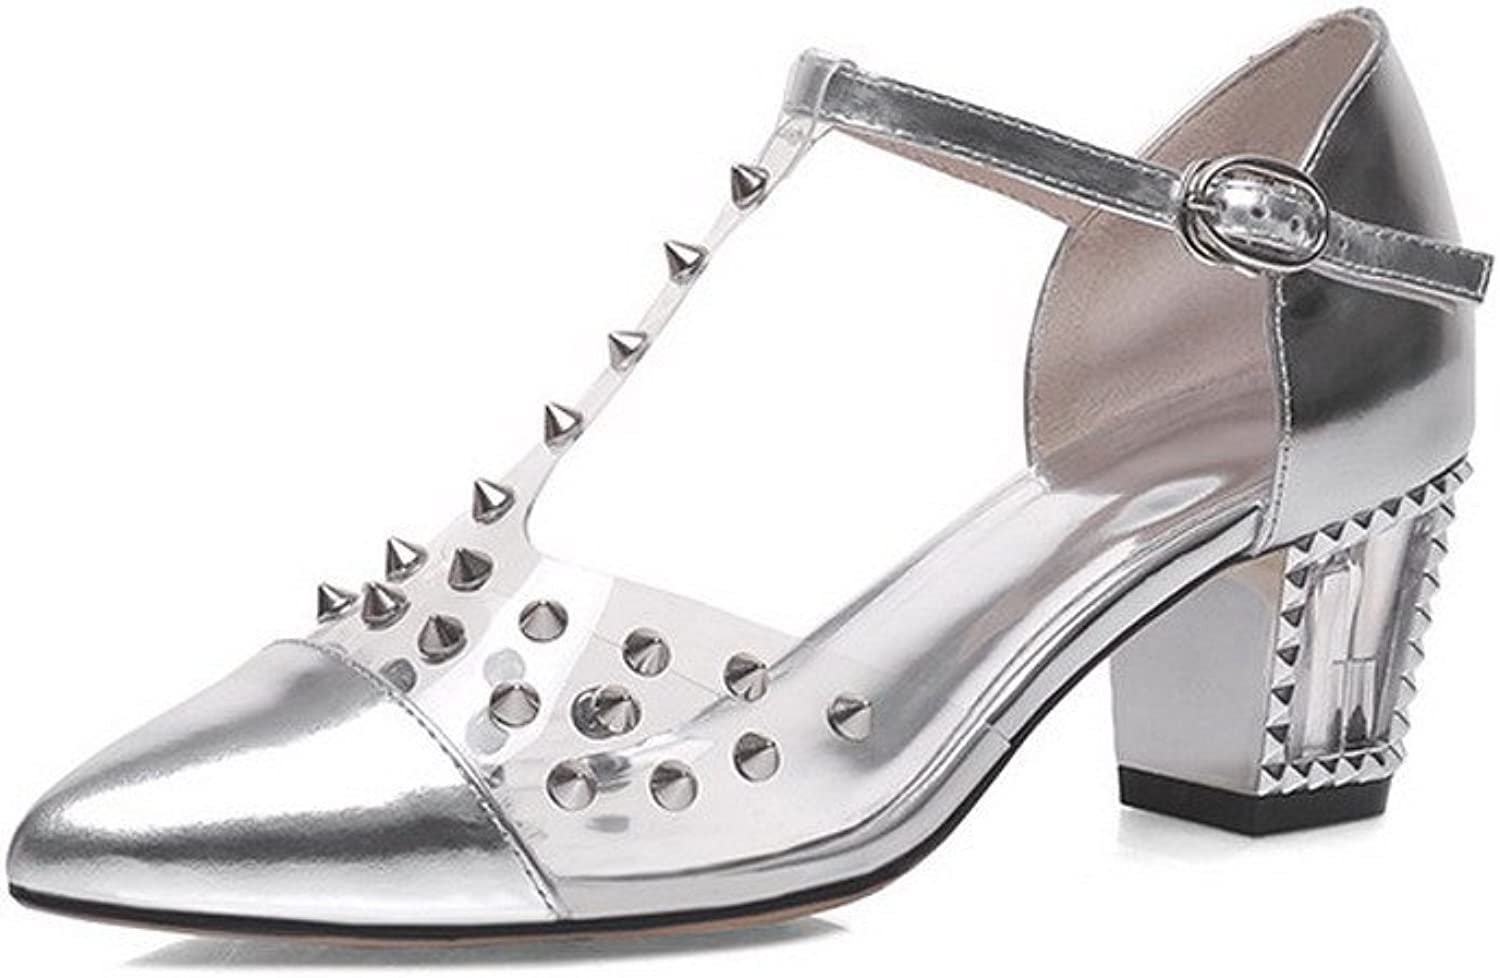 AllhqFashion Women's Closed Pointed Toe Cow Leather Kitten Heels Solid Sandals with Studded